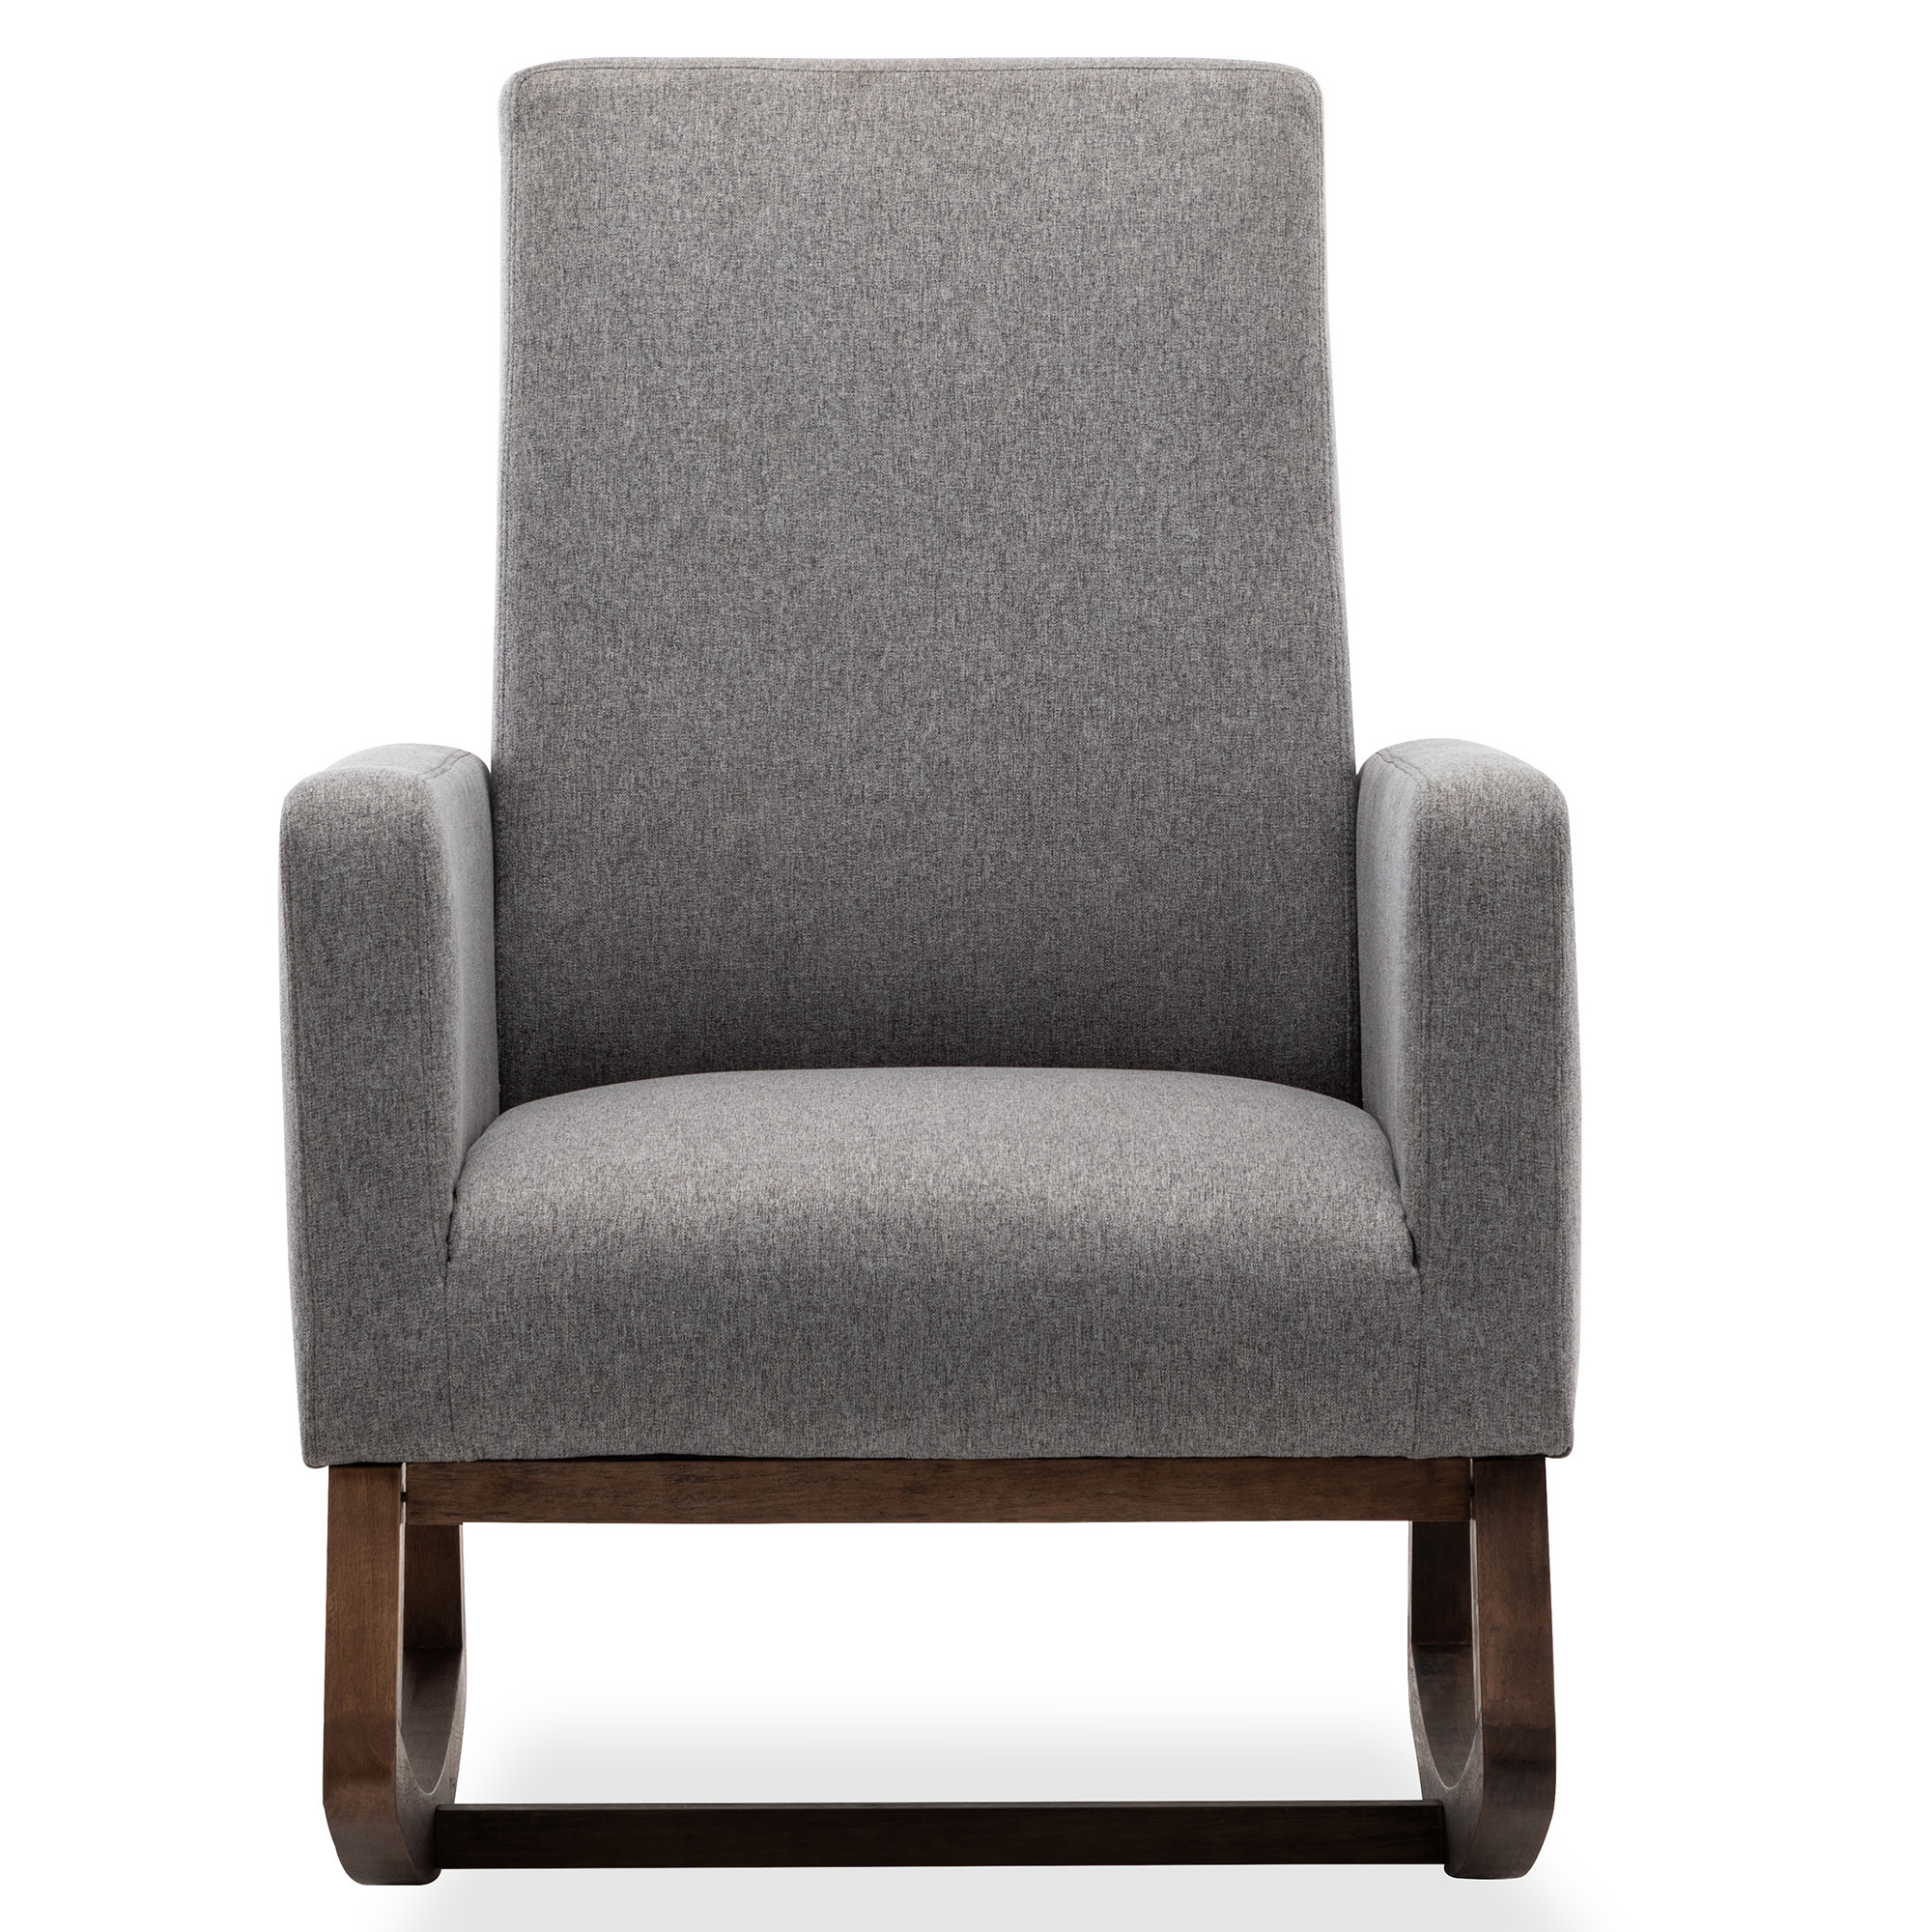 Details About Gray Living Room Rocking Chair Upholstered Fabric High Back Armchair Padded Seat